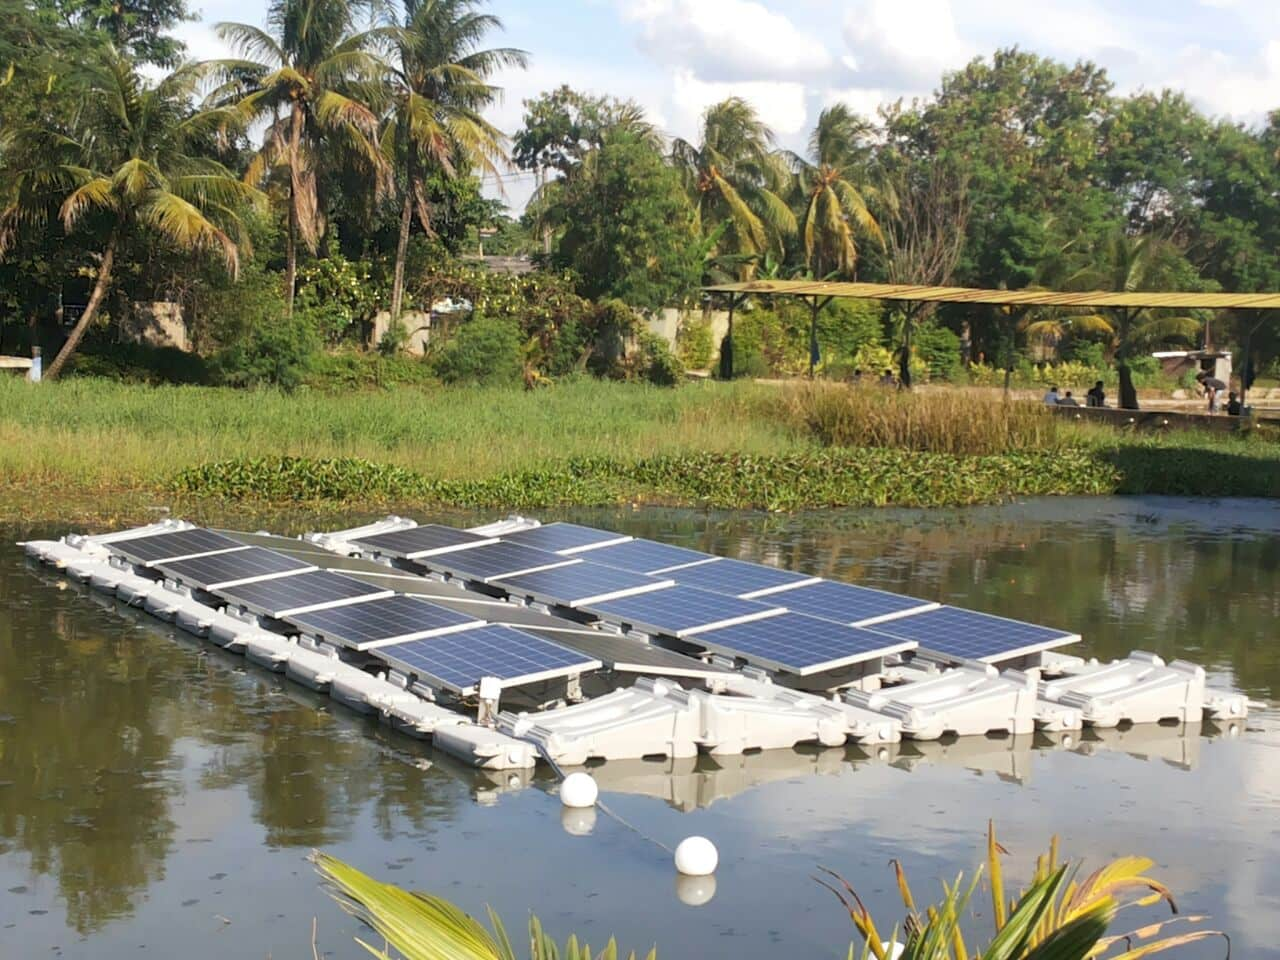 Putting Solar Panels on Water Is a Great Idea&mdash